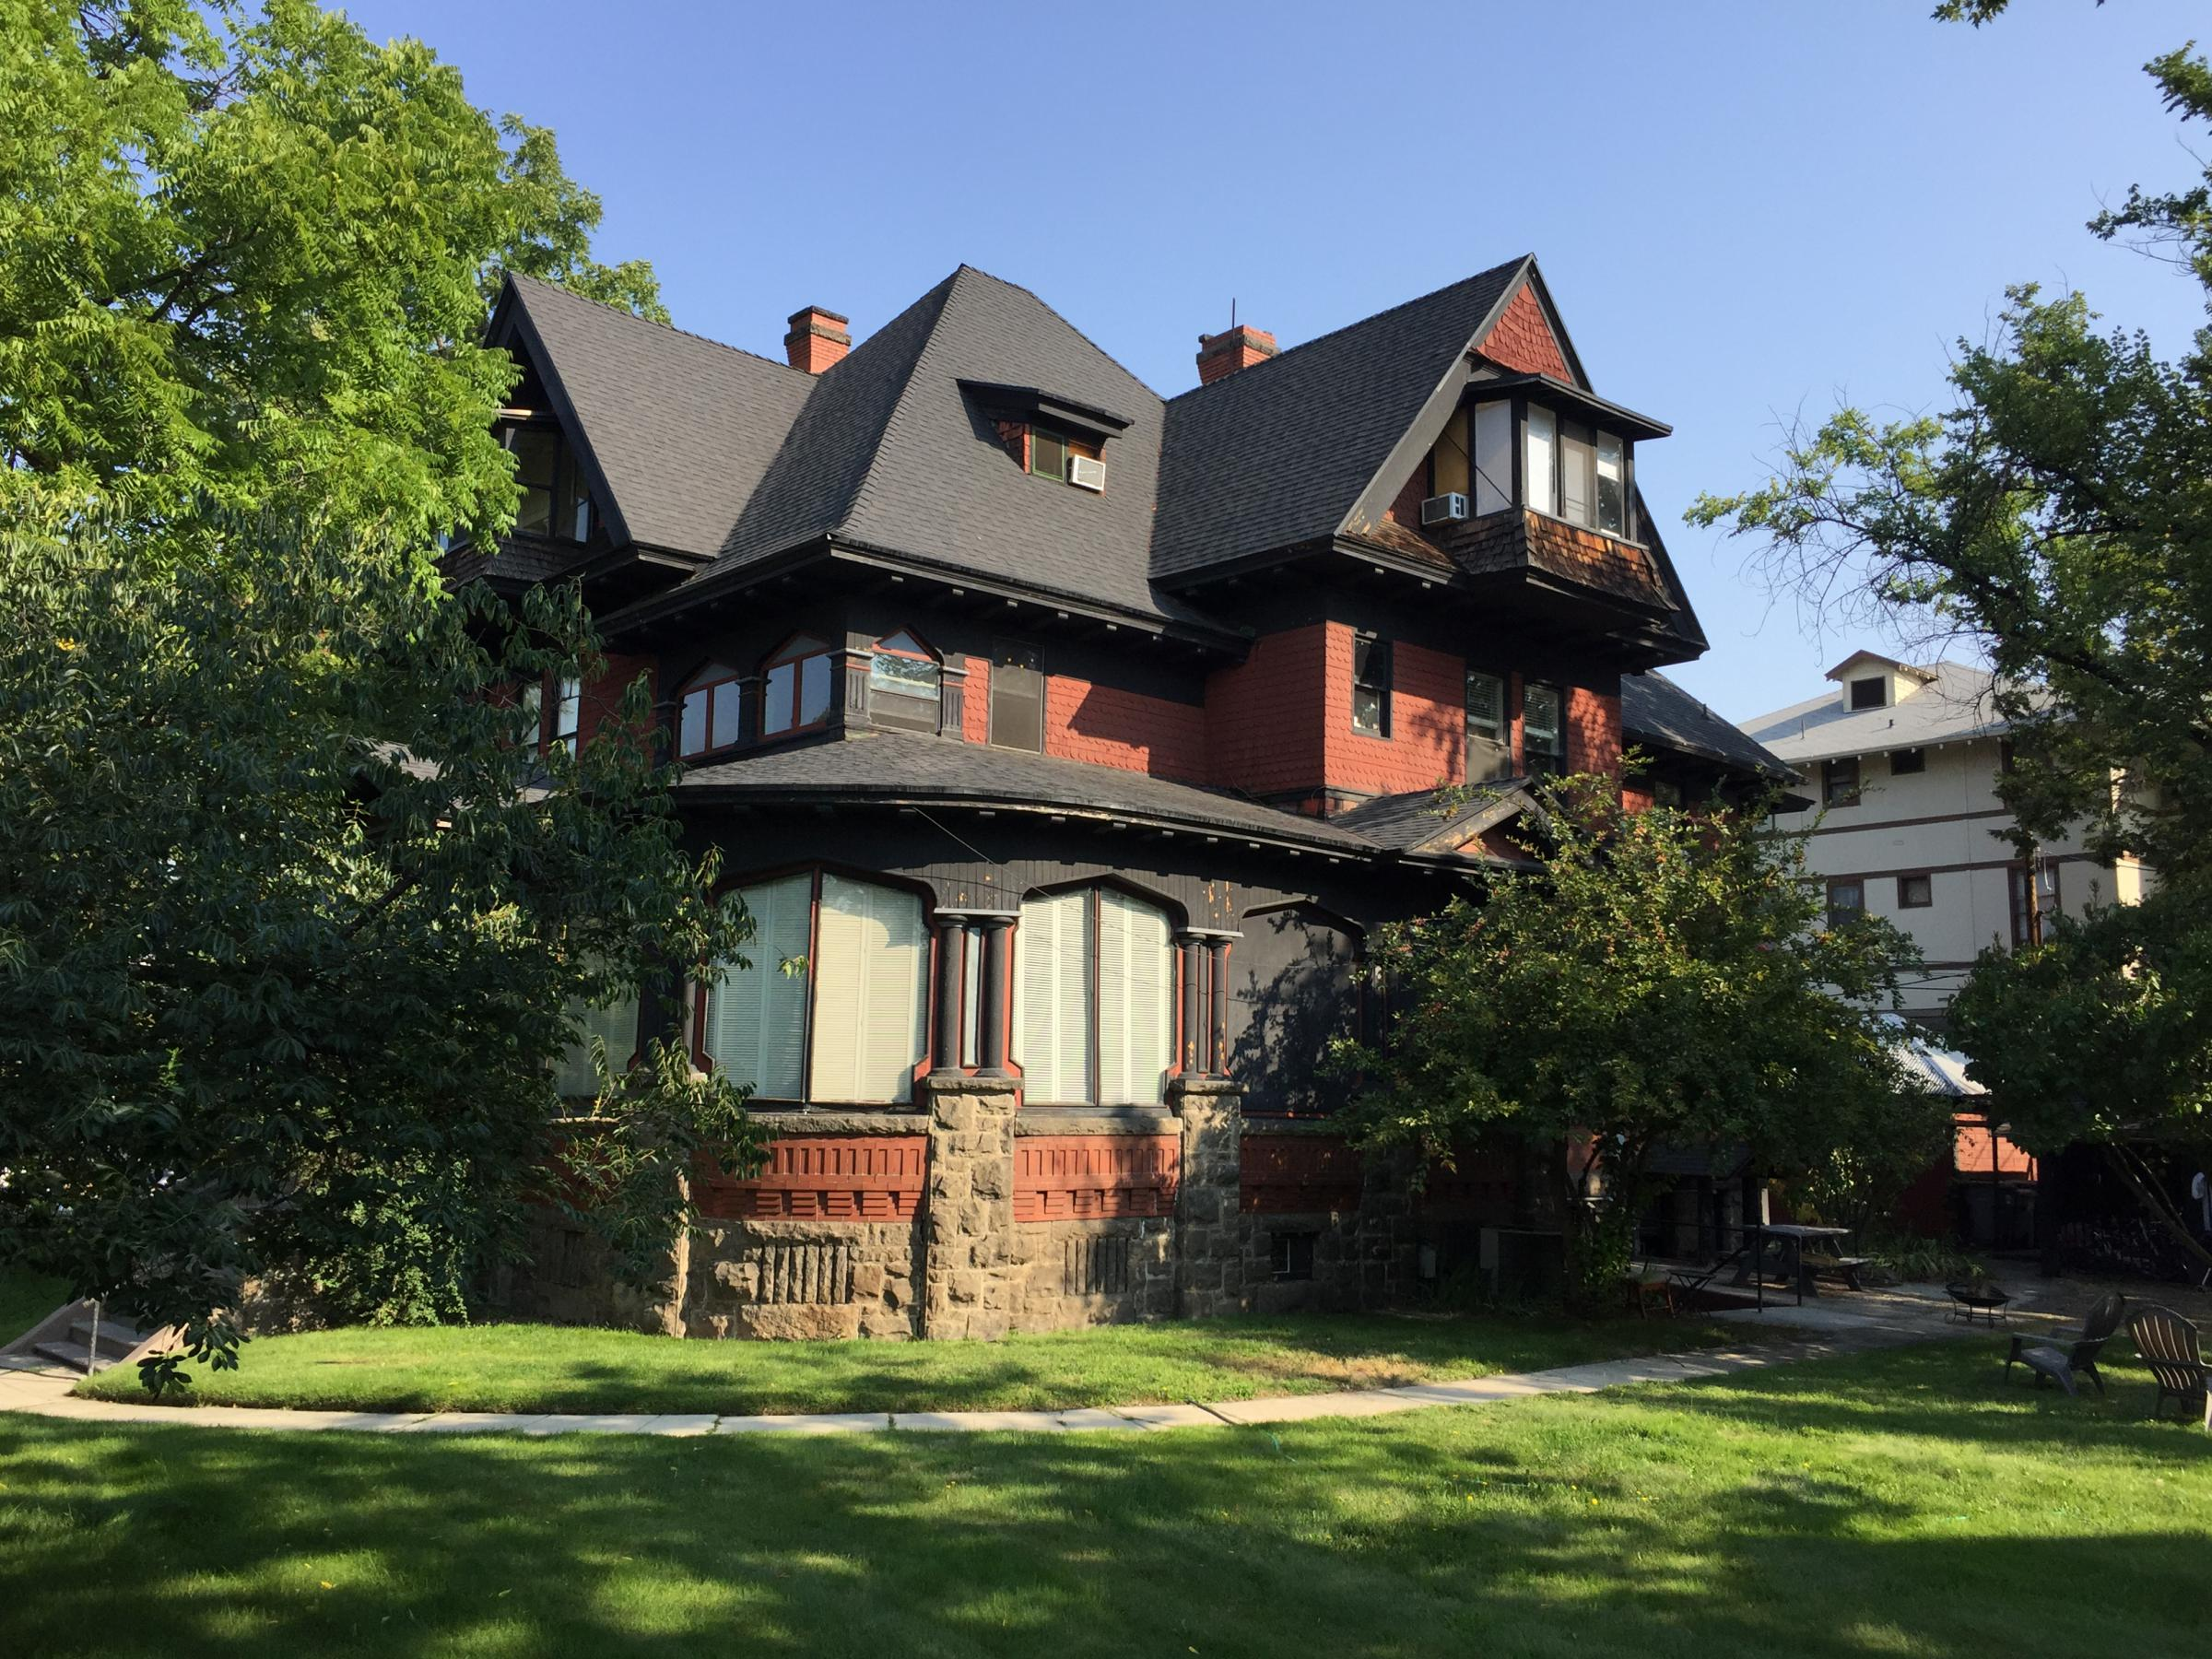 city of boise pushes pause so historic home might be saved boise